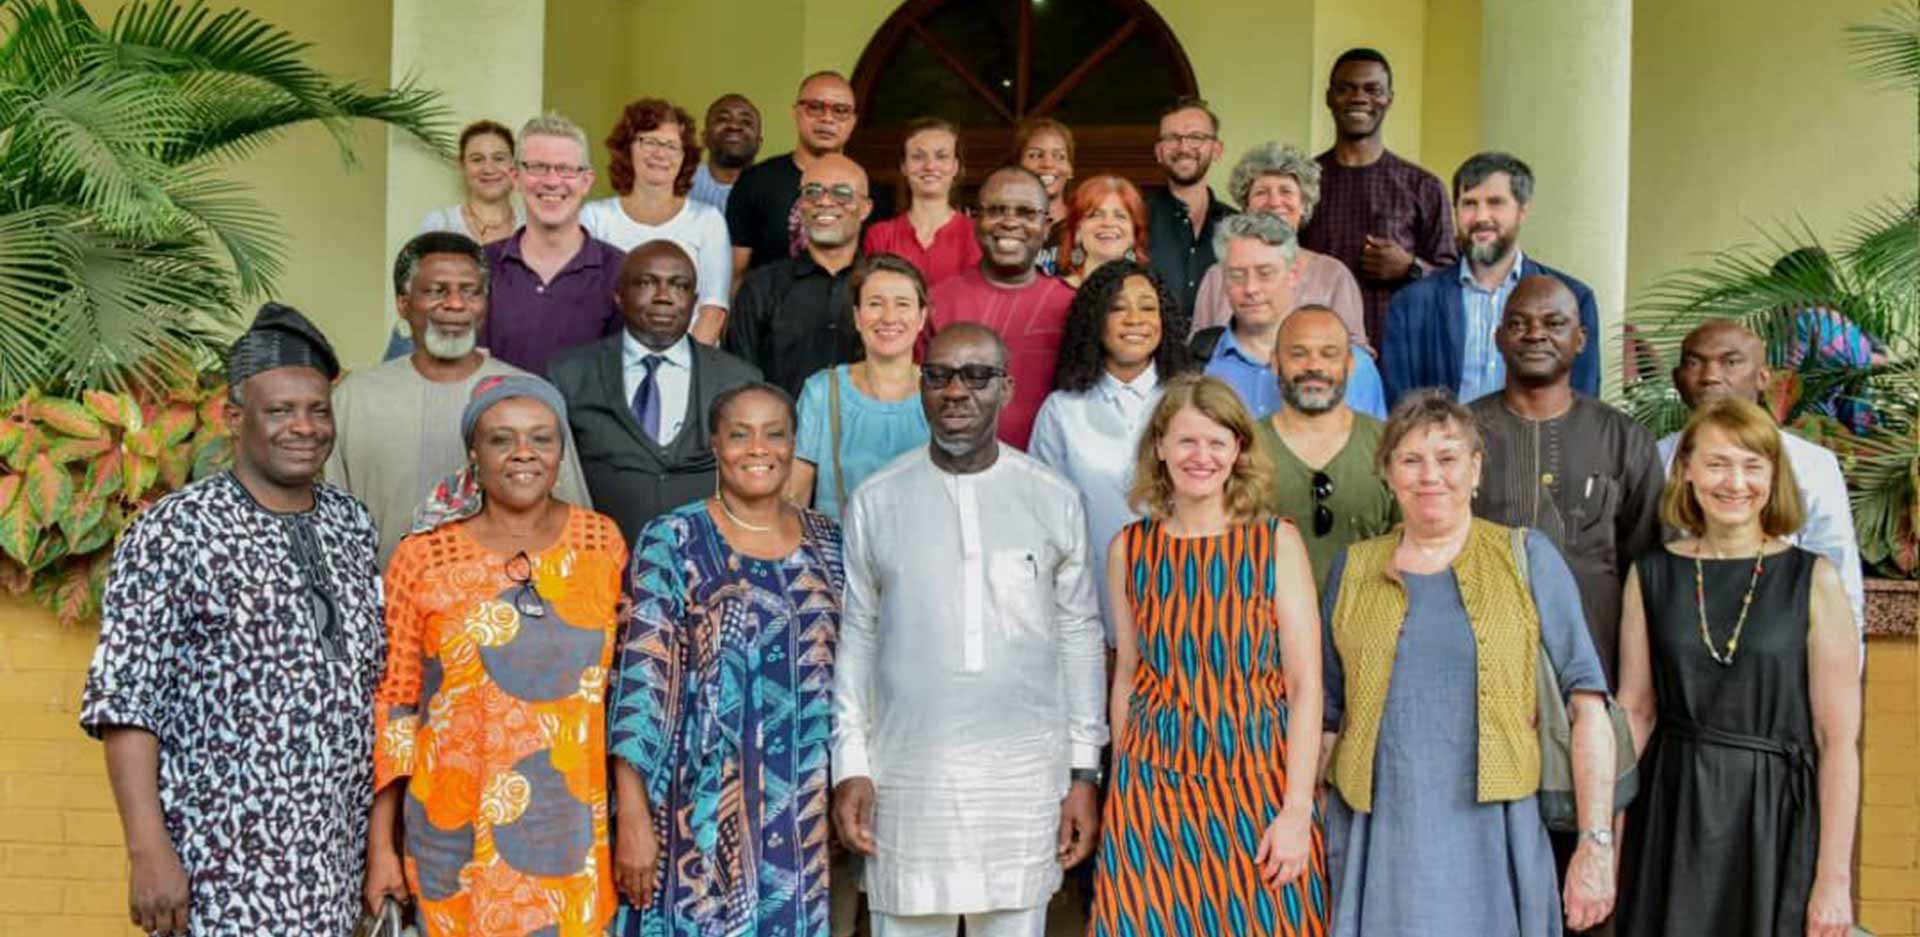 Governor of Edo State, Godwin Obaseki (front row, centre); Commissioner for Justice and Attorney General, Prof Yinka Omorogbe (front row, third from left); members of the Benin Dialogue Group and other stakeholders, along with members of the government of Edo State after the breakfast meeting in Benin City on 9 July 2019